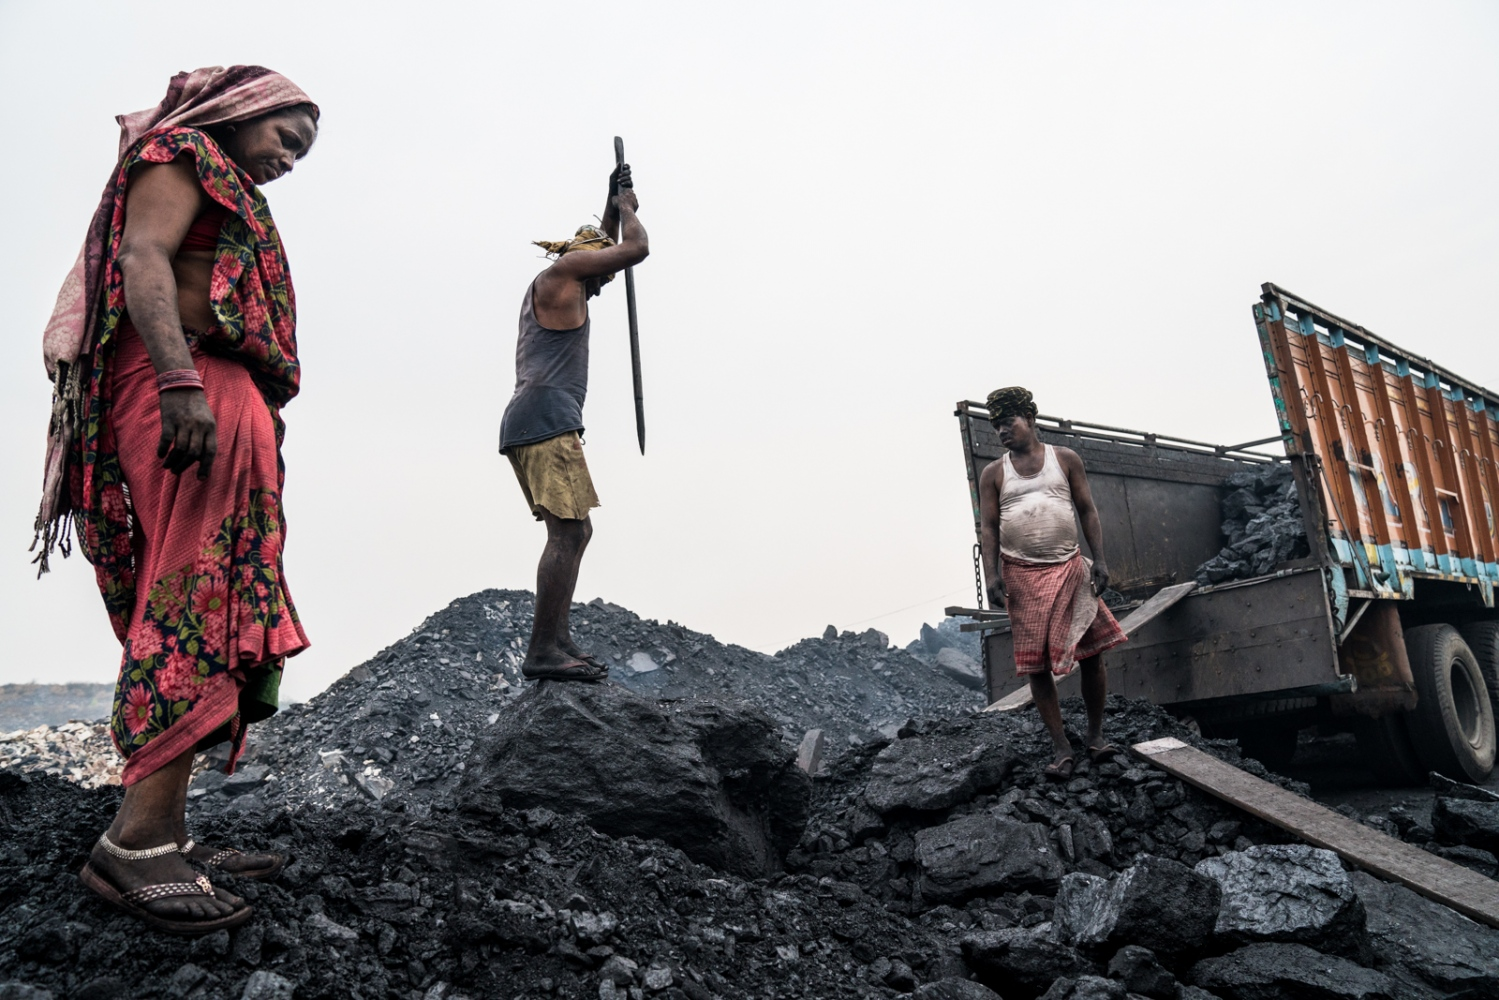 Workers crush up and load a truck up with coal that is to be transported to power plants across India's energy hungry mega-cities. Coal burning for electricity is a major contributor to carbon dioxide and climate change.